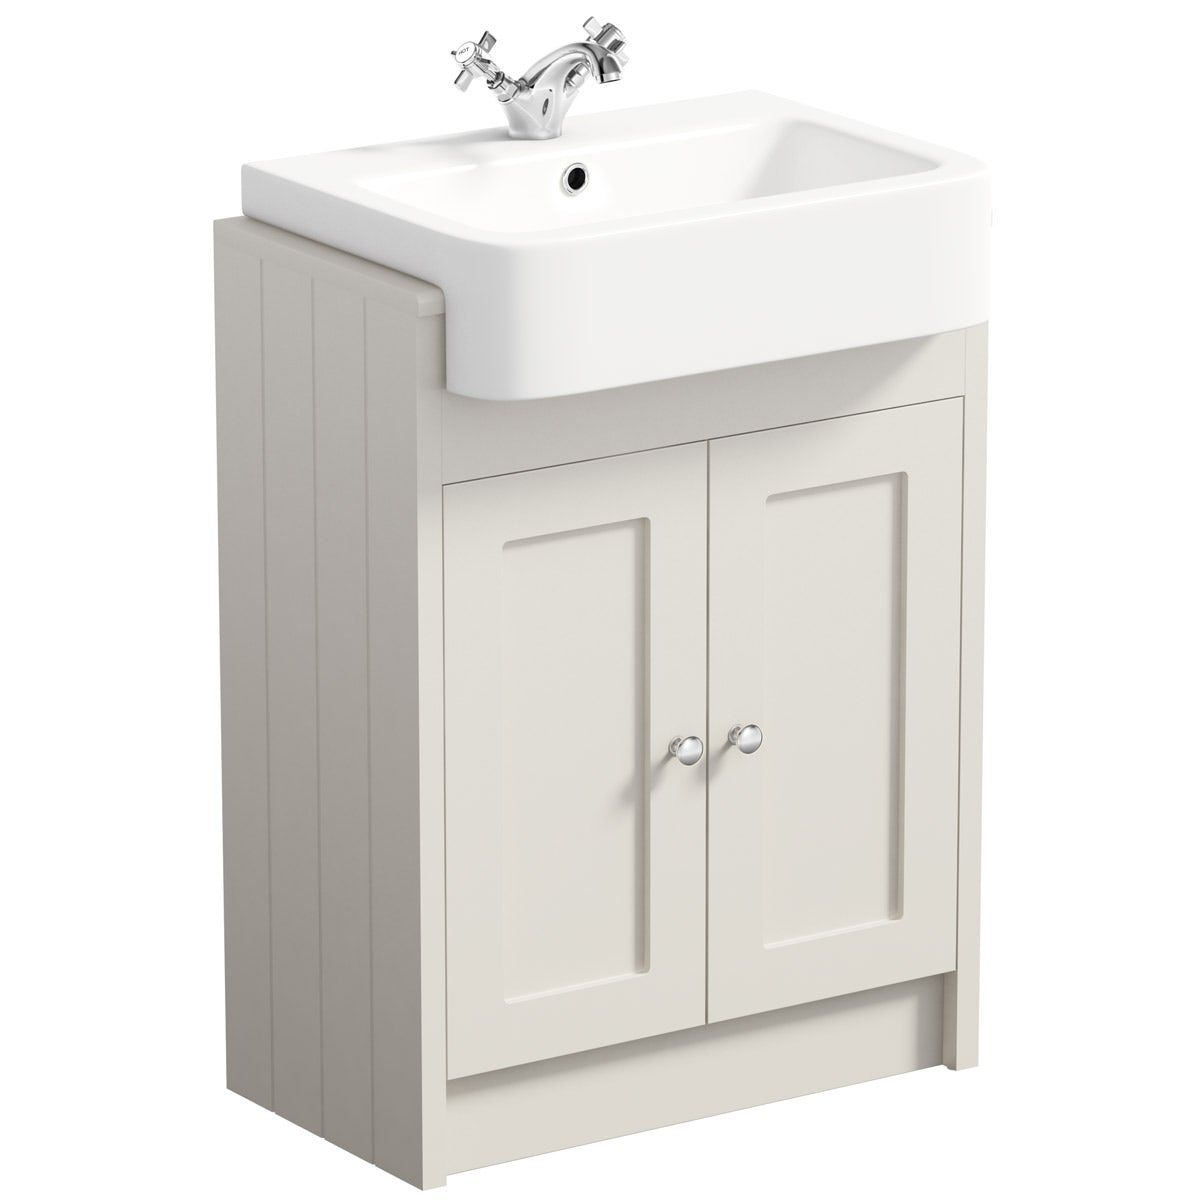 The Bath Co Dulwich Stone Ivory Floorstanding Vanity Unit With Semi Recessed Basin 600mm With Images Bathroom Vanity Units Vanity Units Vanity